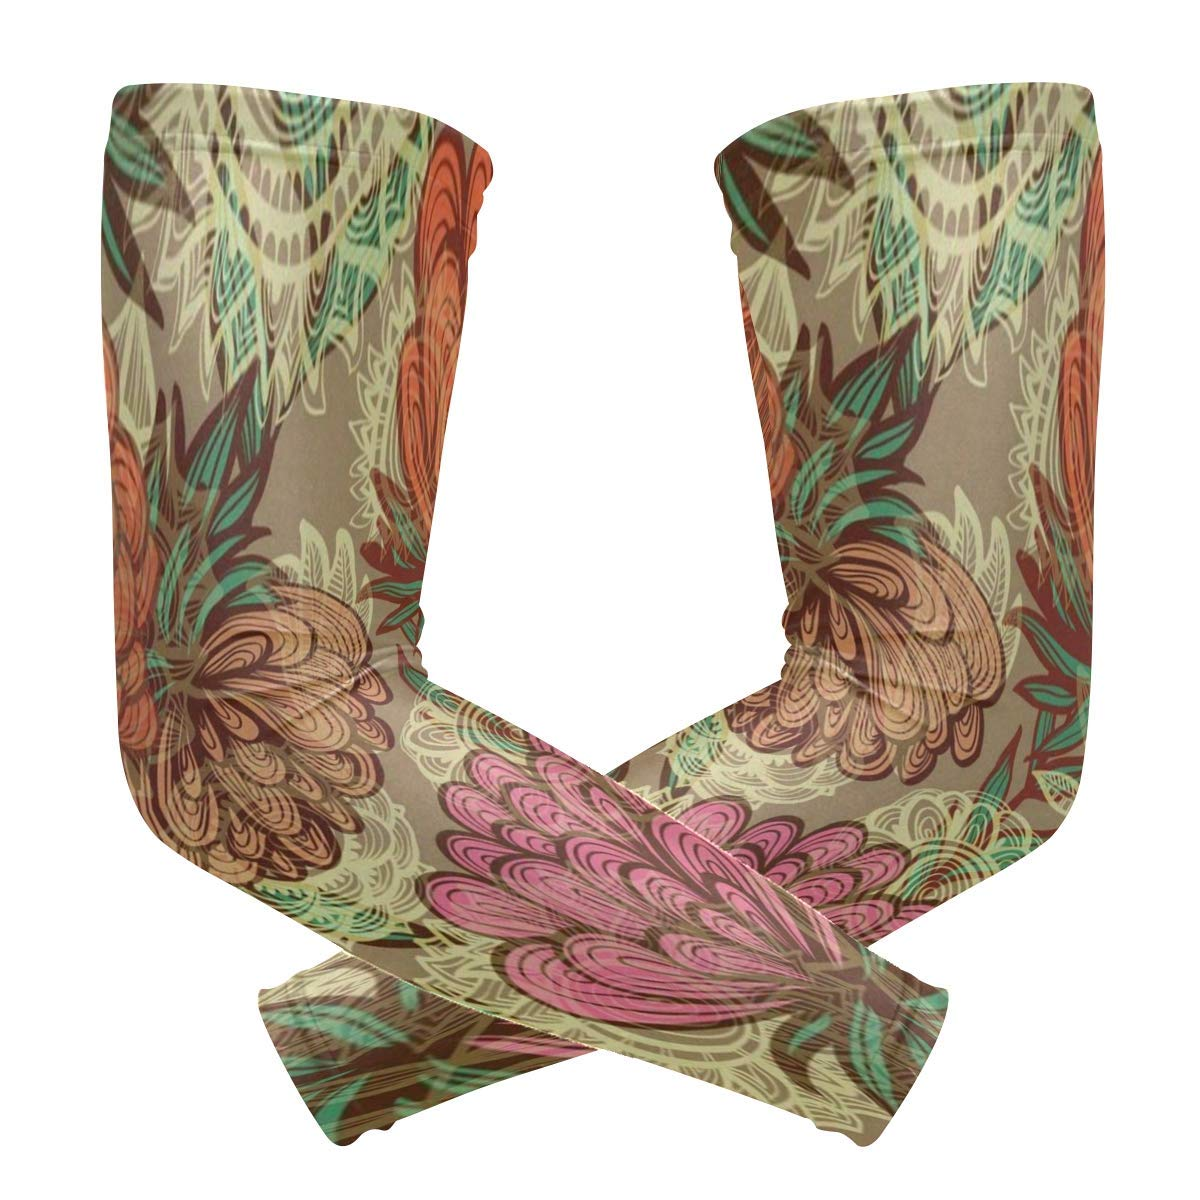 Arm Sleeves Rainforest Flower Mens Sun UV Protection Sleeves Arm Warmers Cool Long Set Covers White